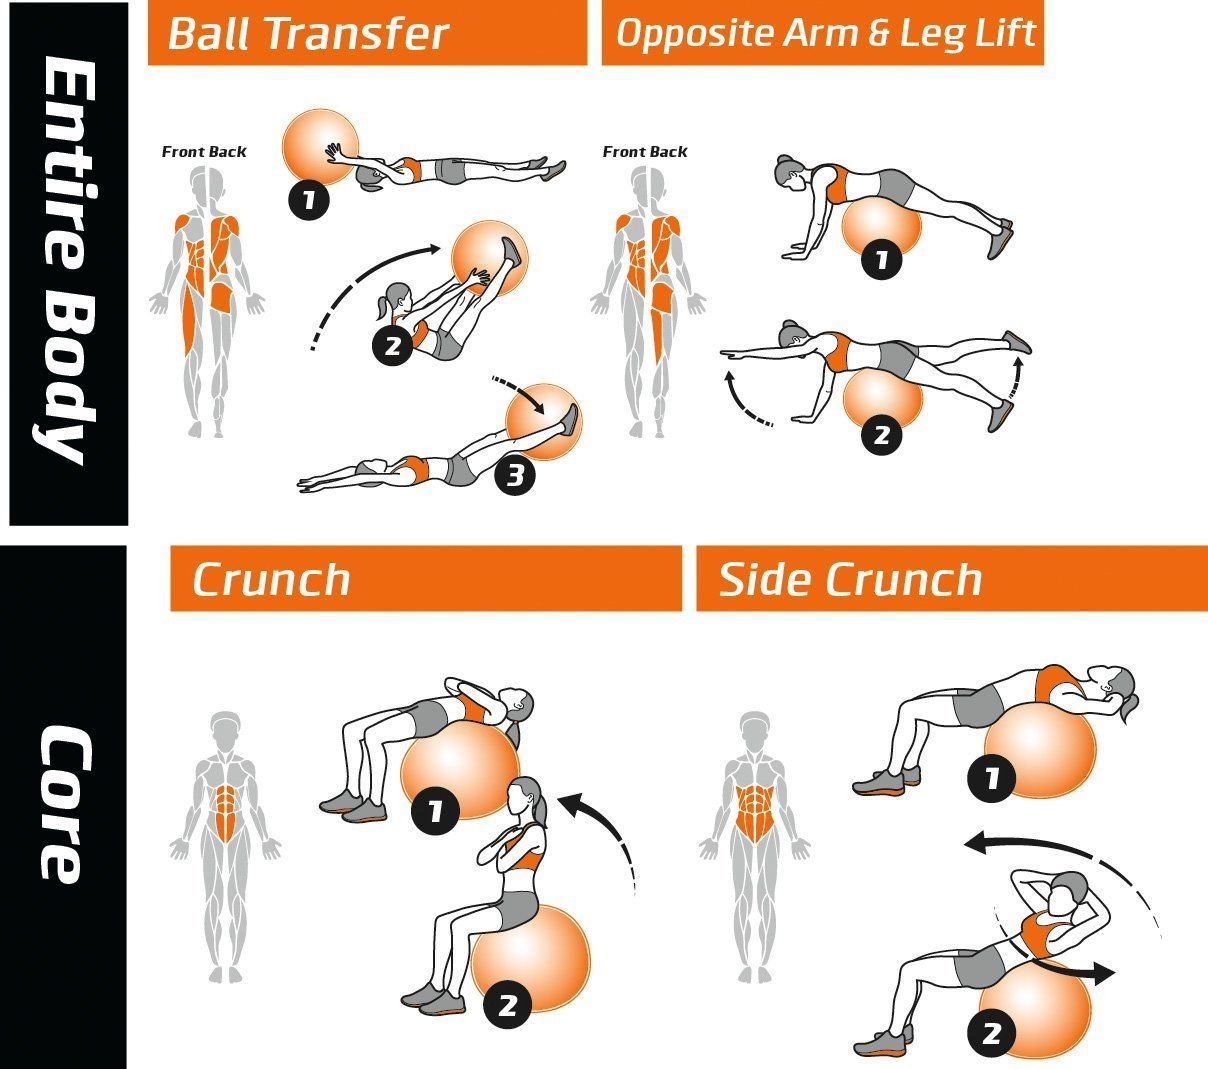 Amazon Com Exercise Ball Poster Total Body Workout Your Personal Trainer Fitness Program For Ball Exercises Total Body Workout Workout Programs For Women